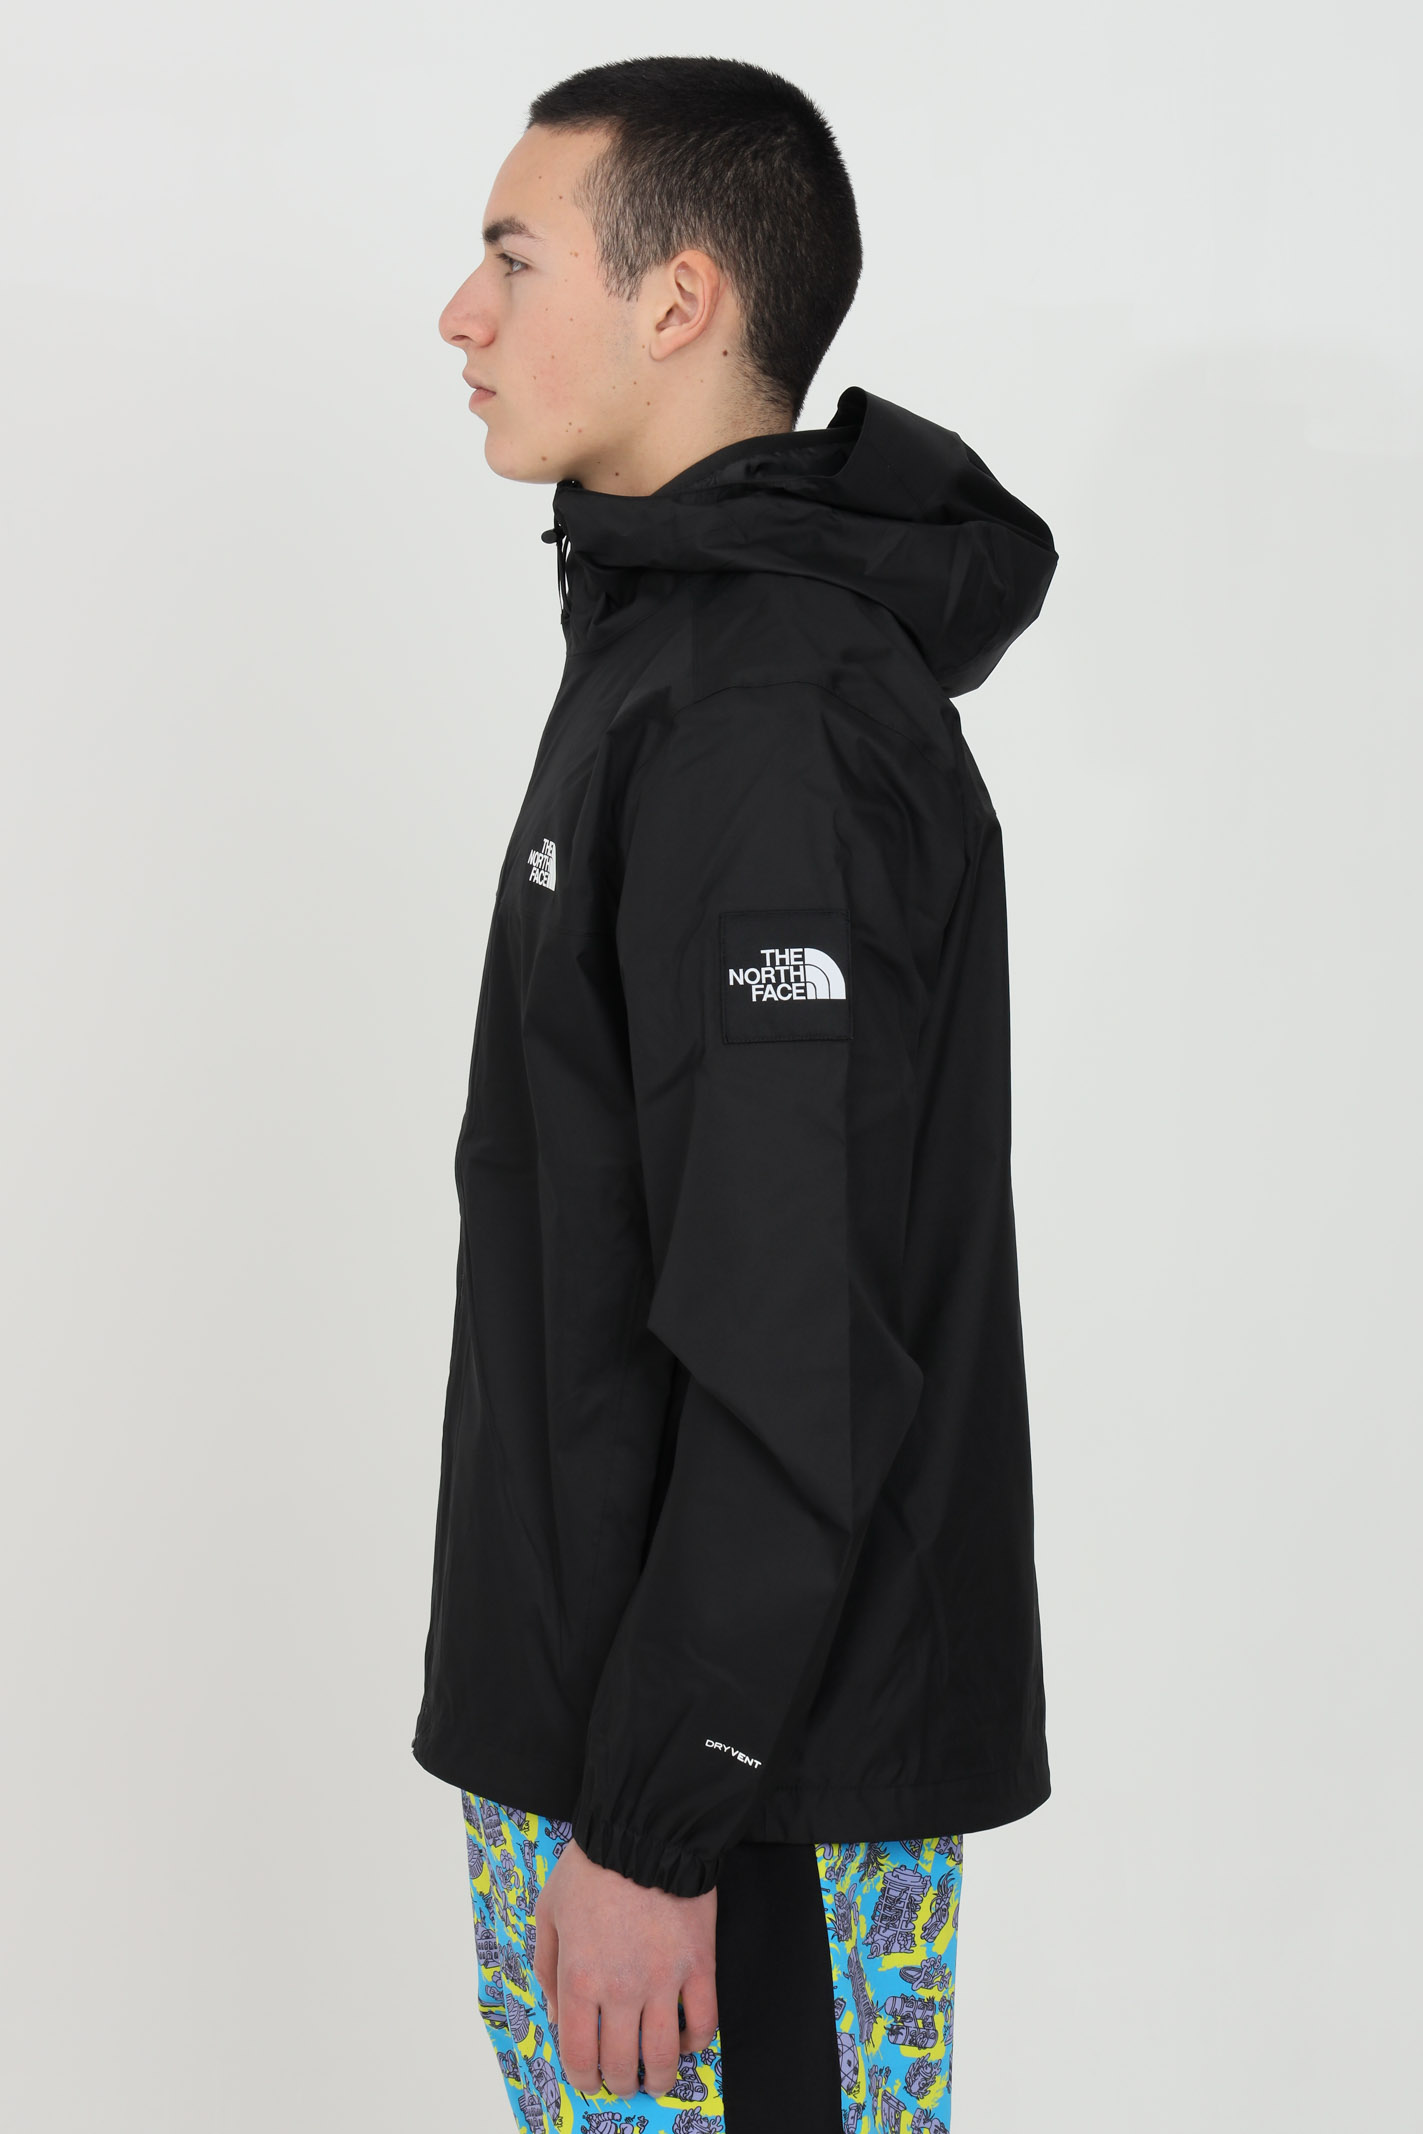 Giacca metro ex mountain q THE NORTH FACE | Giubbotti | NF0A55BSJK31JK31